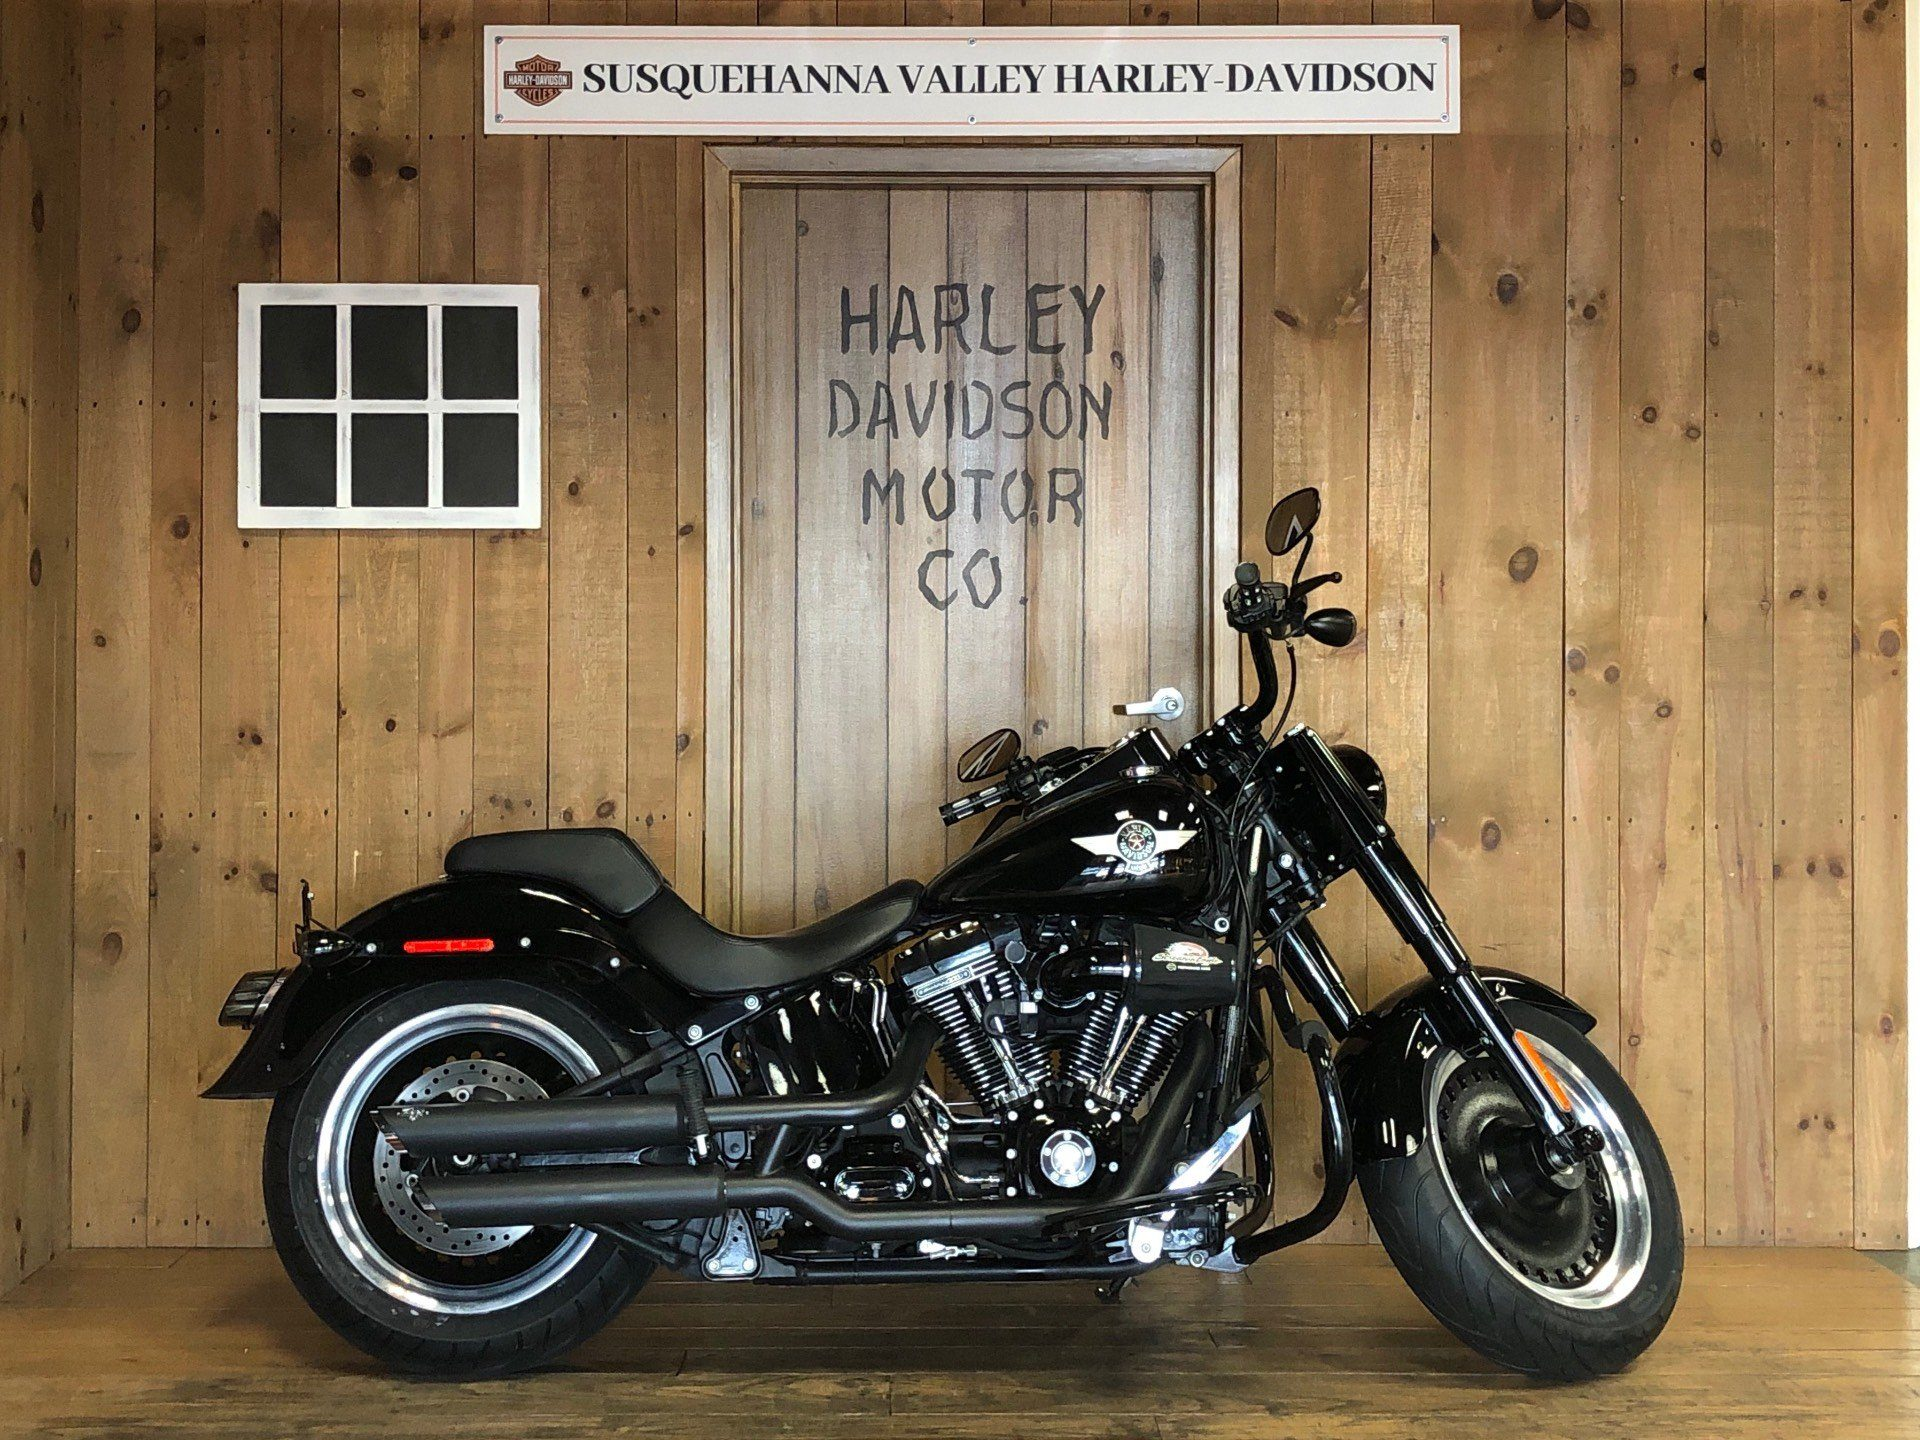 2016 Harley-Davidson Fat Boy Lo w/ 110 Motor in Harrisburg, Pennsylvania - Photo 1